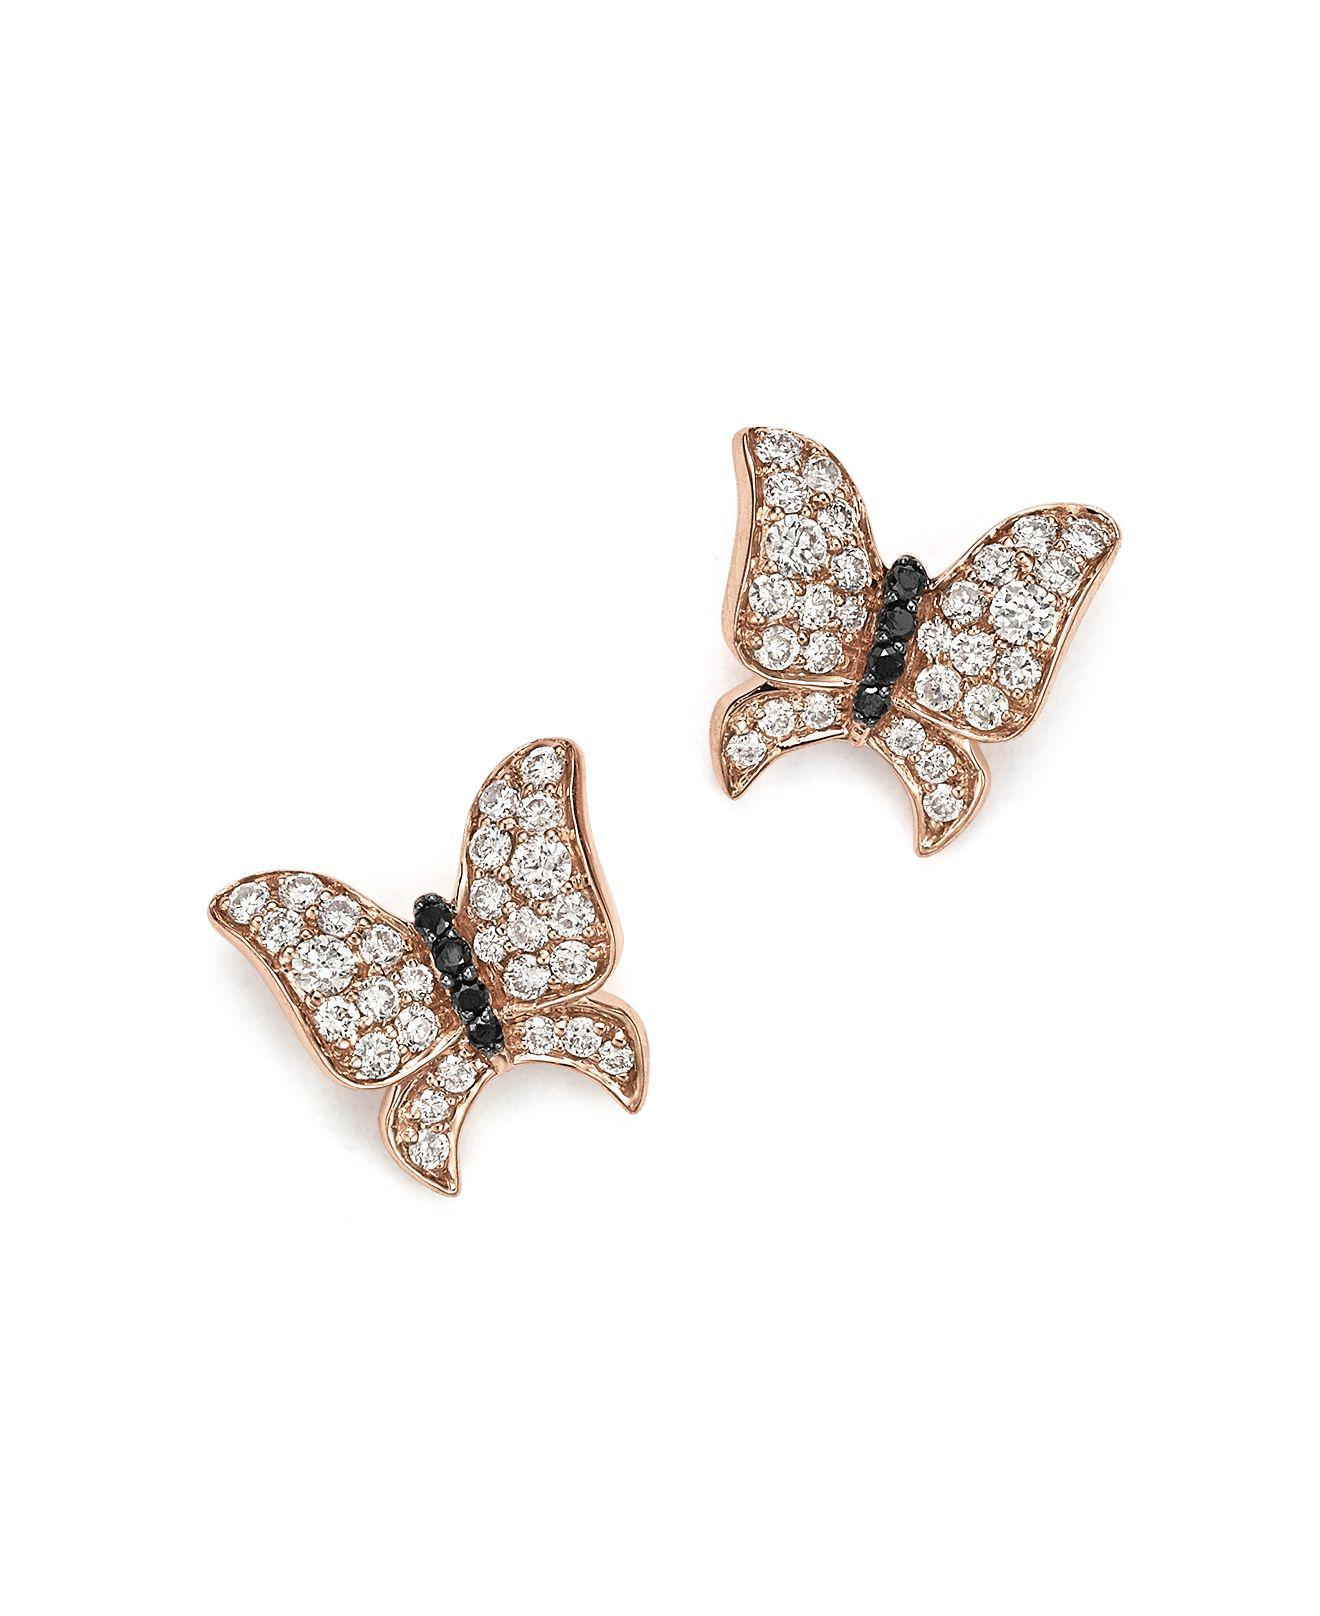 realreal jewelry the products gucci earrings butterfly stud enlarged